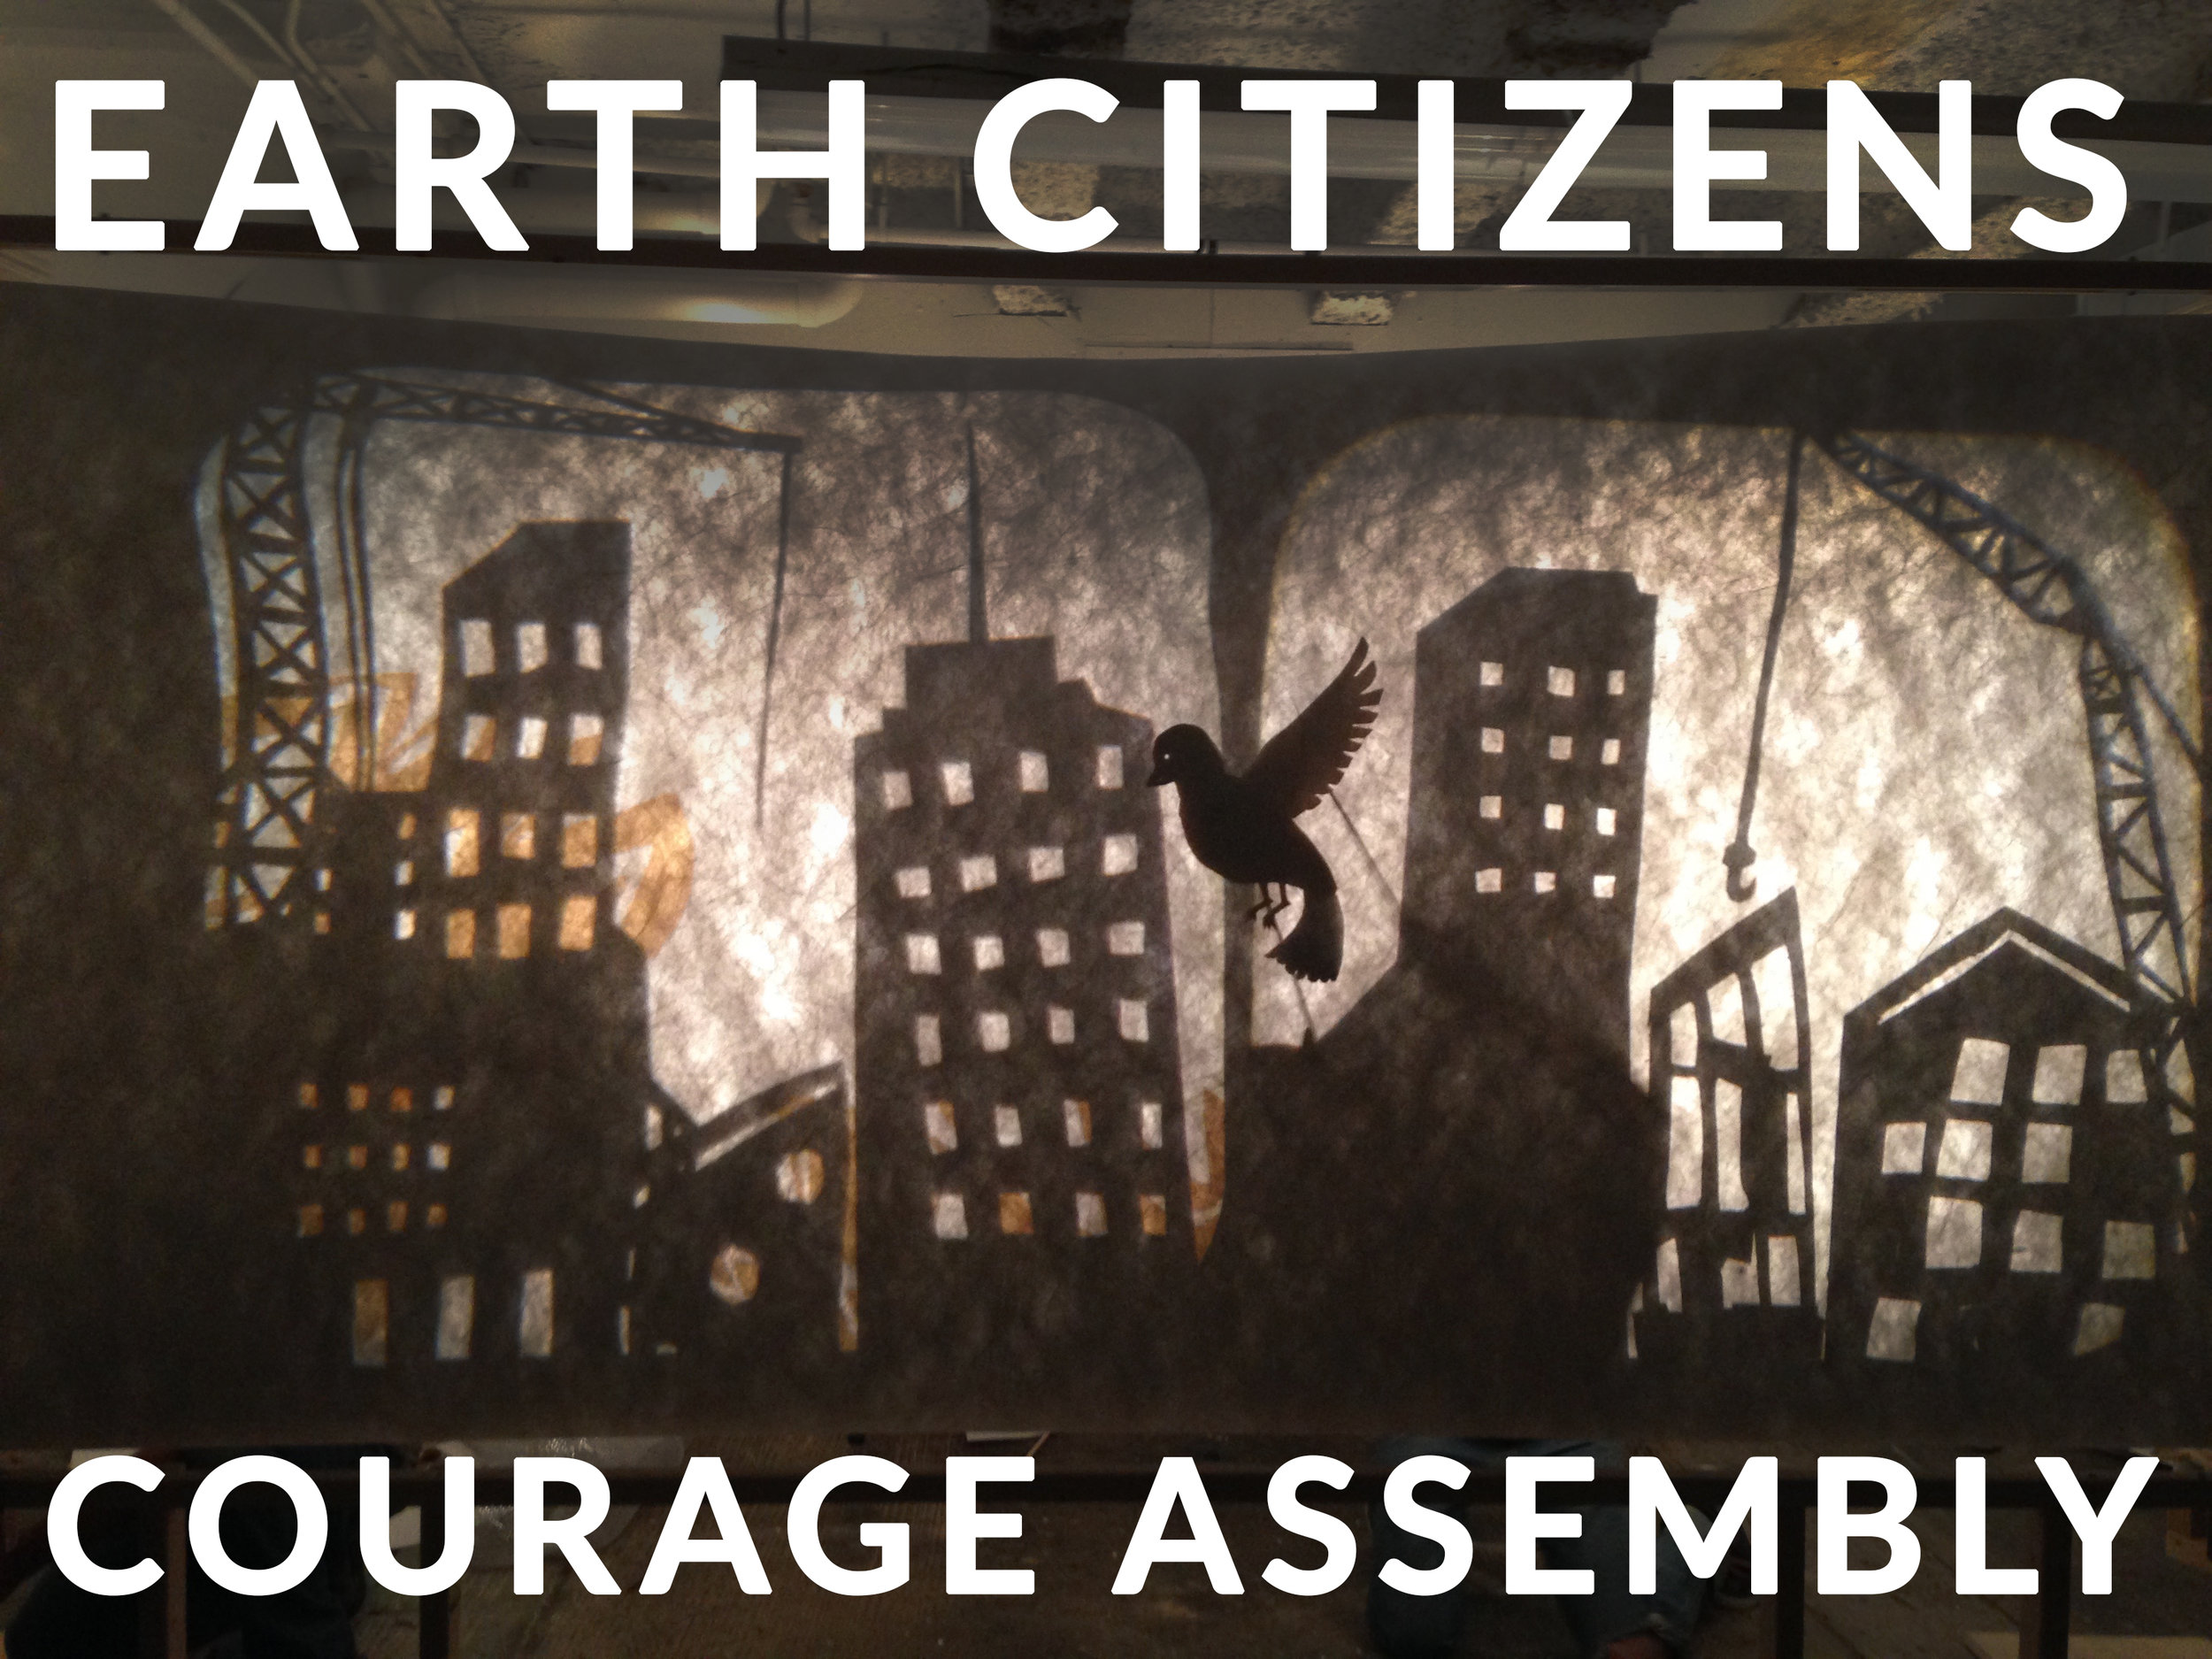 earth citizens courage assembly TEXT.jpg